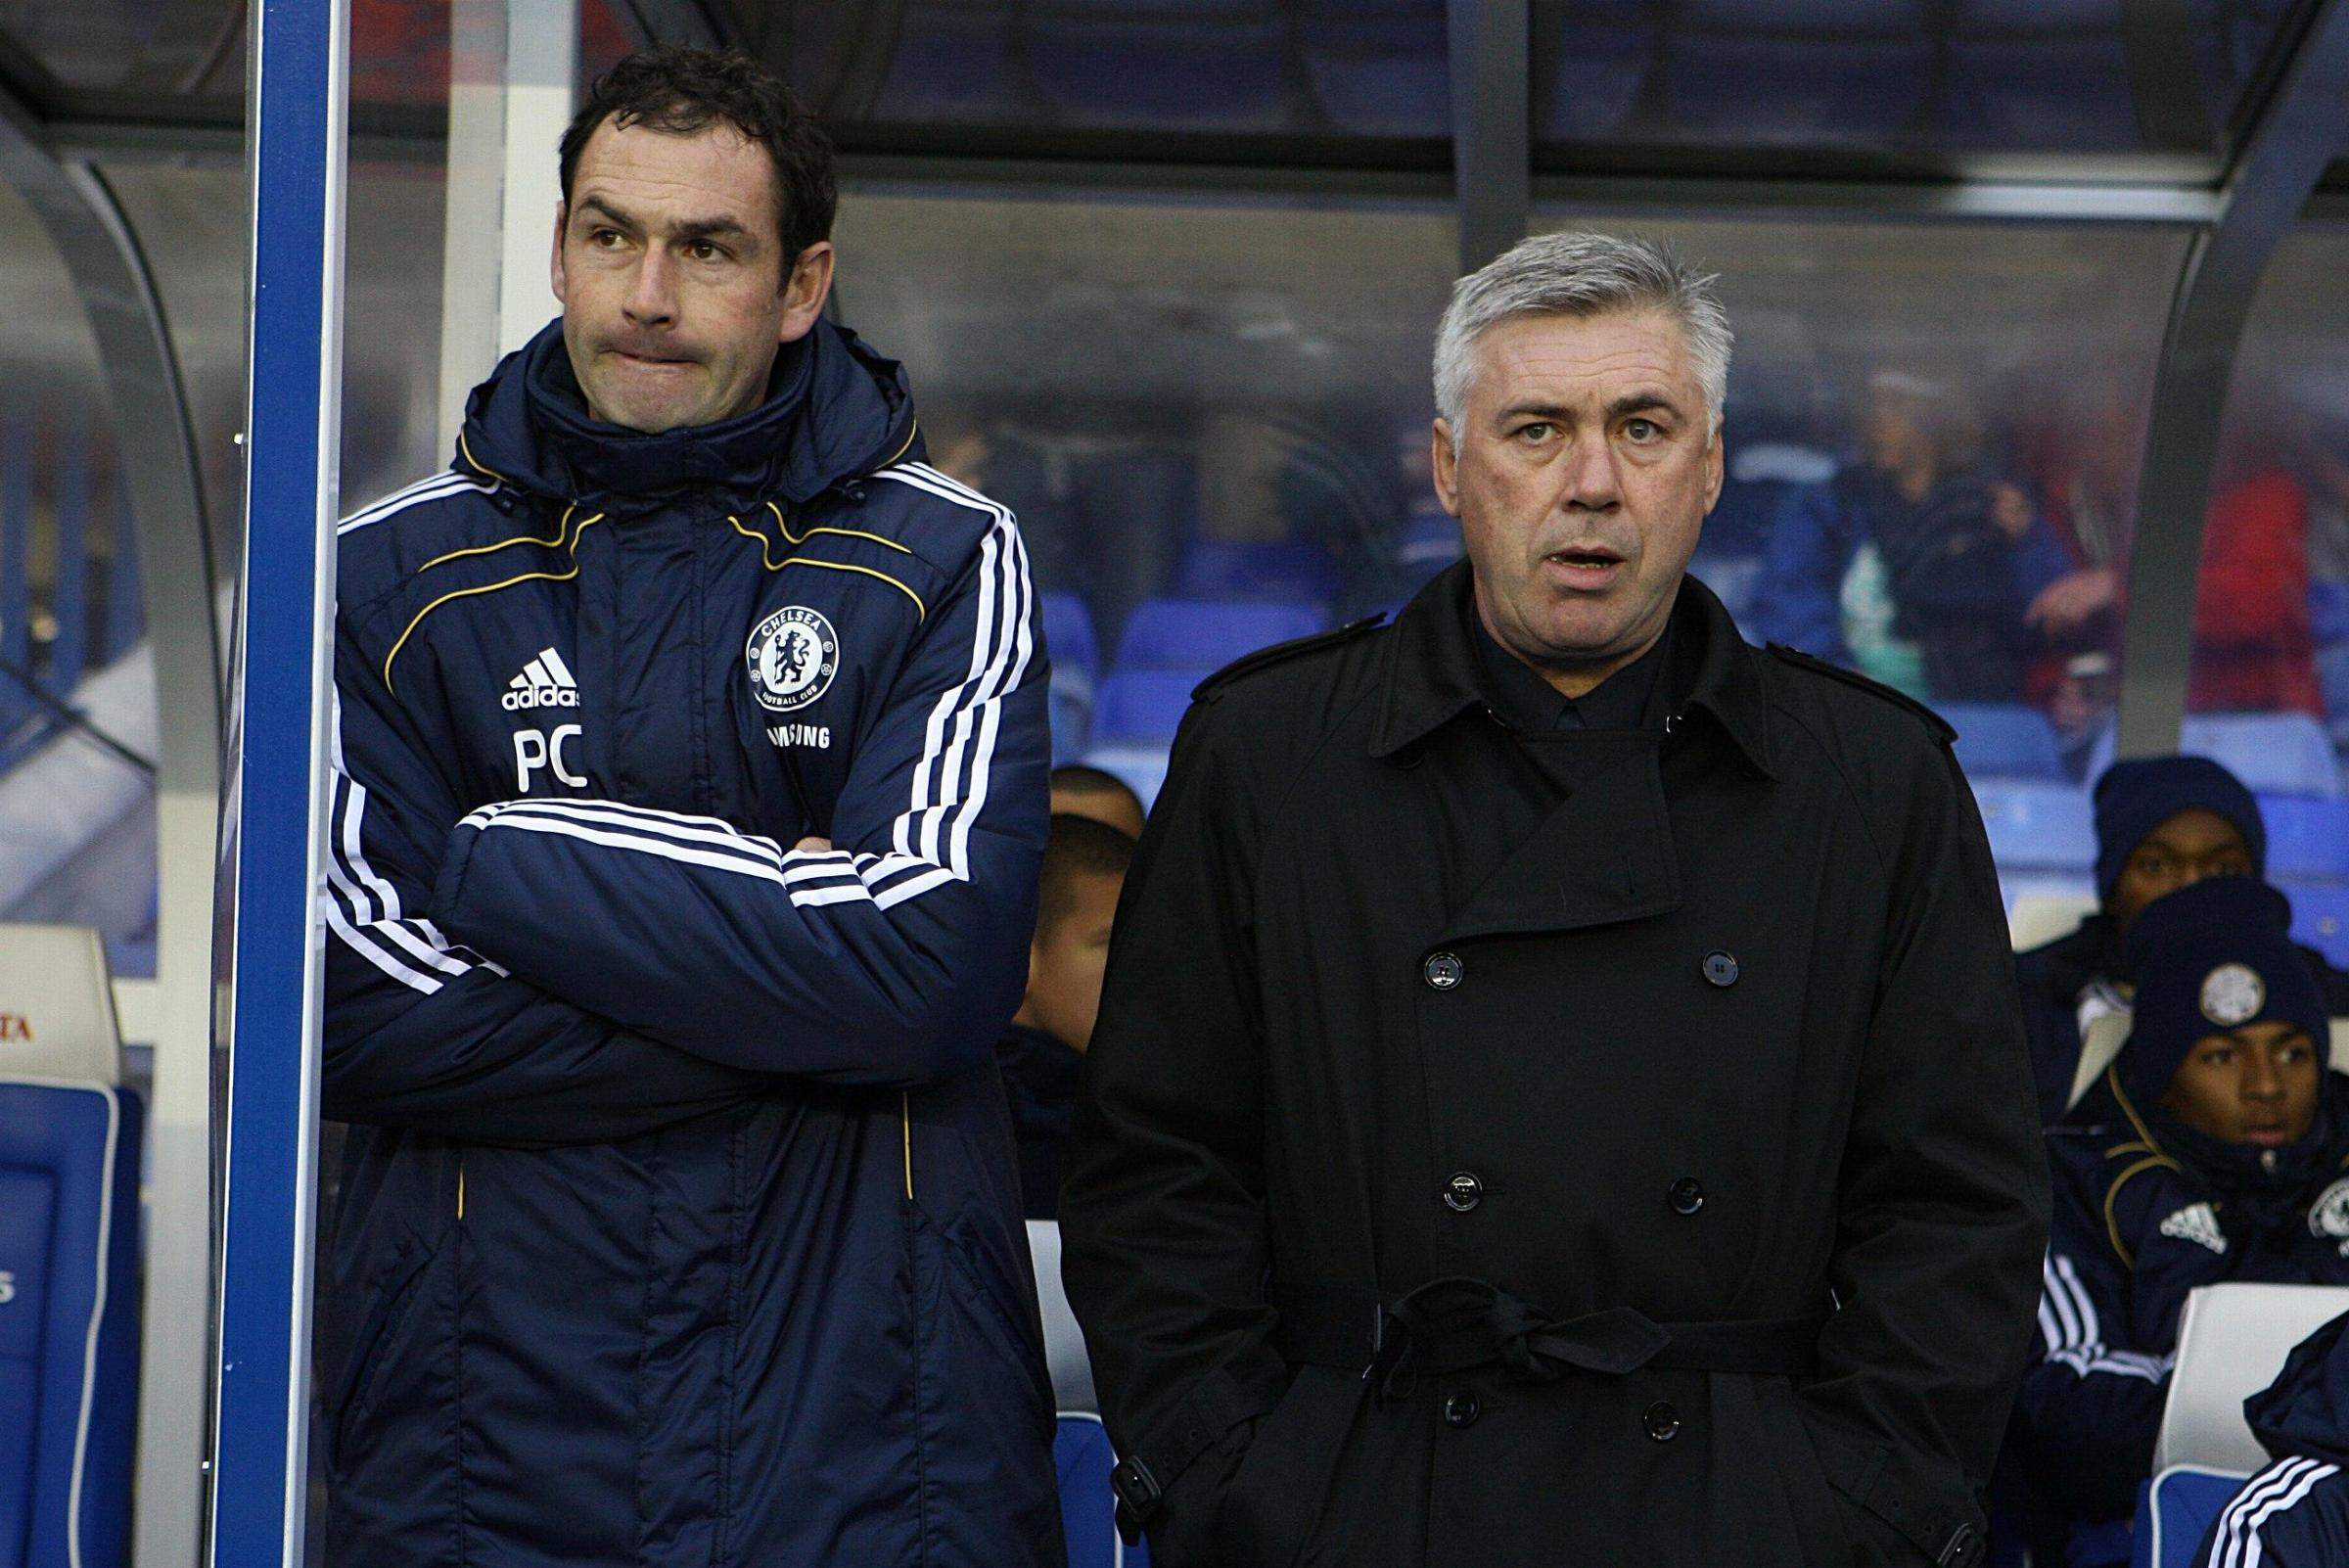 Paul Clement, left, says he is happy at Real Madrid